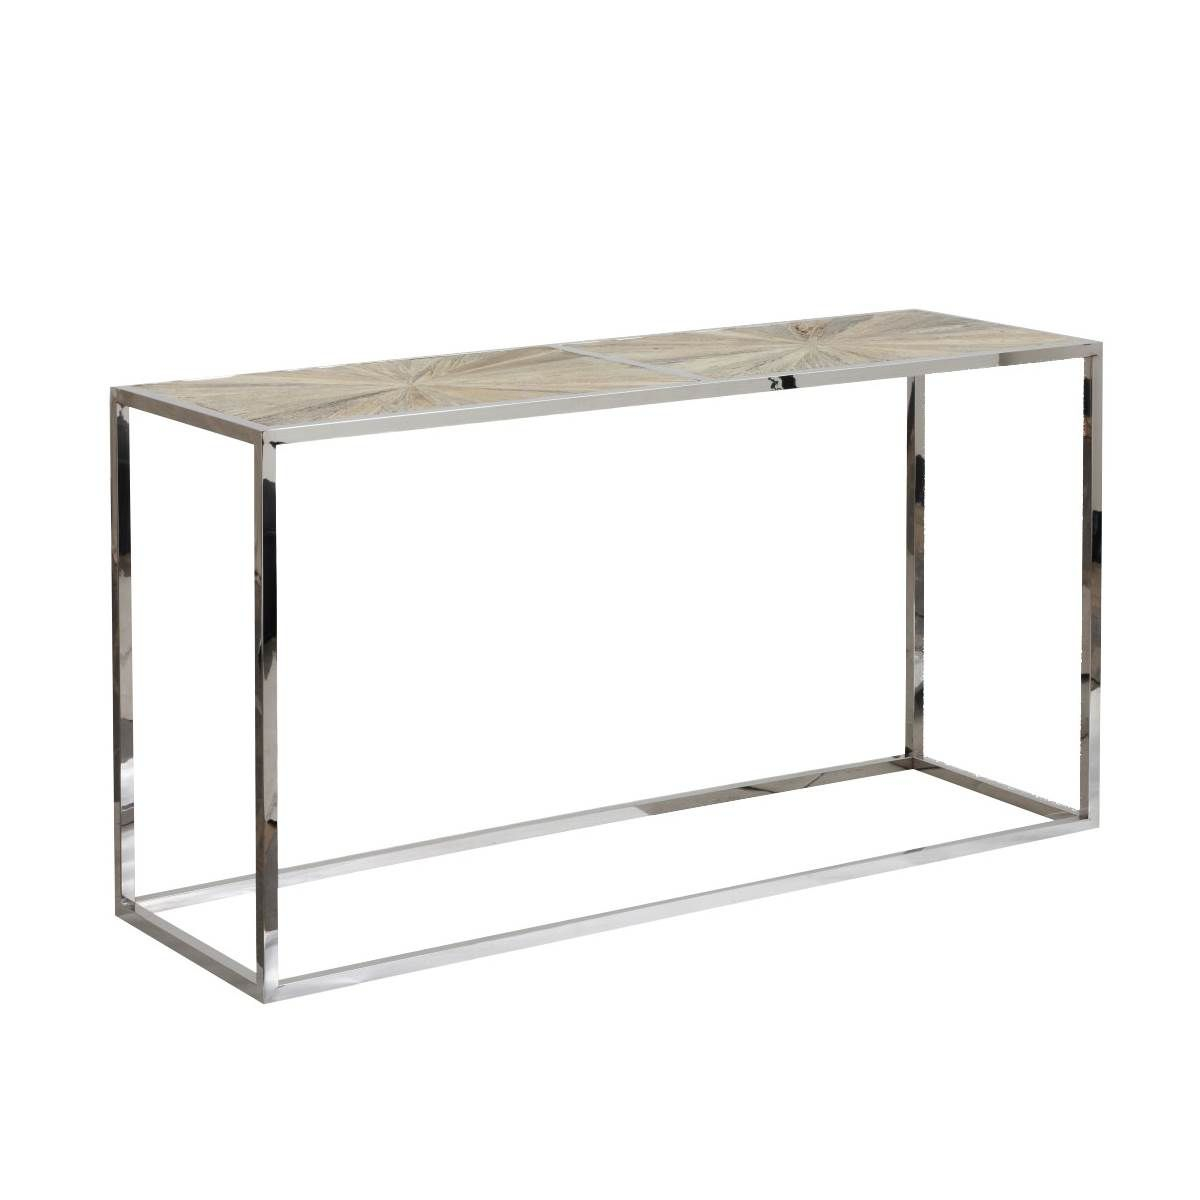 Parquet Console Table | Marshall | Pinterest intended for Parsons Concrete Top & Stainless Steel Base 48X16 Console Tables (Image 21 of 30)